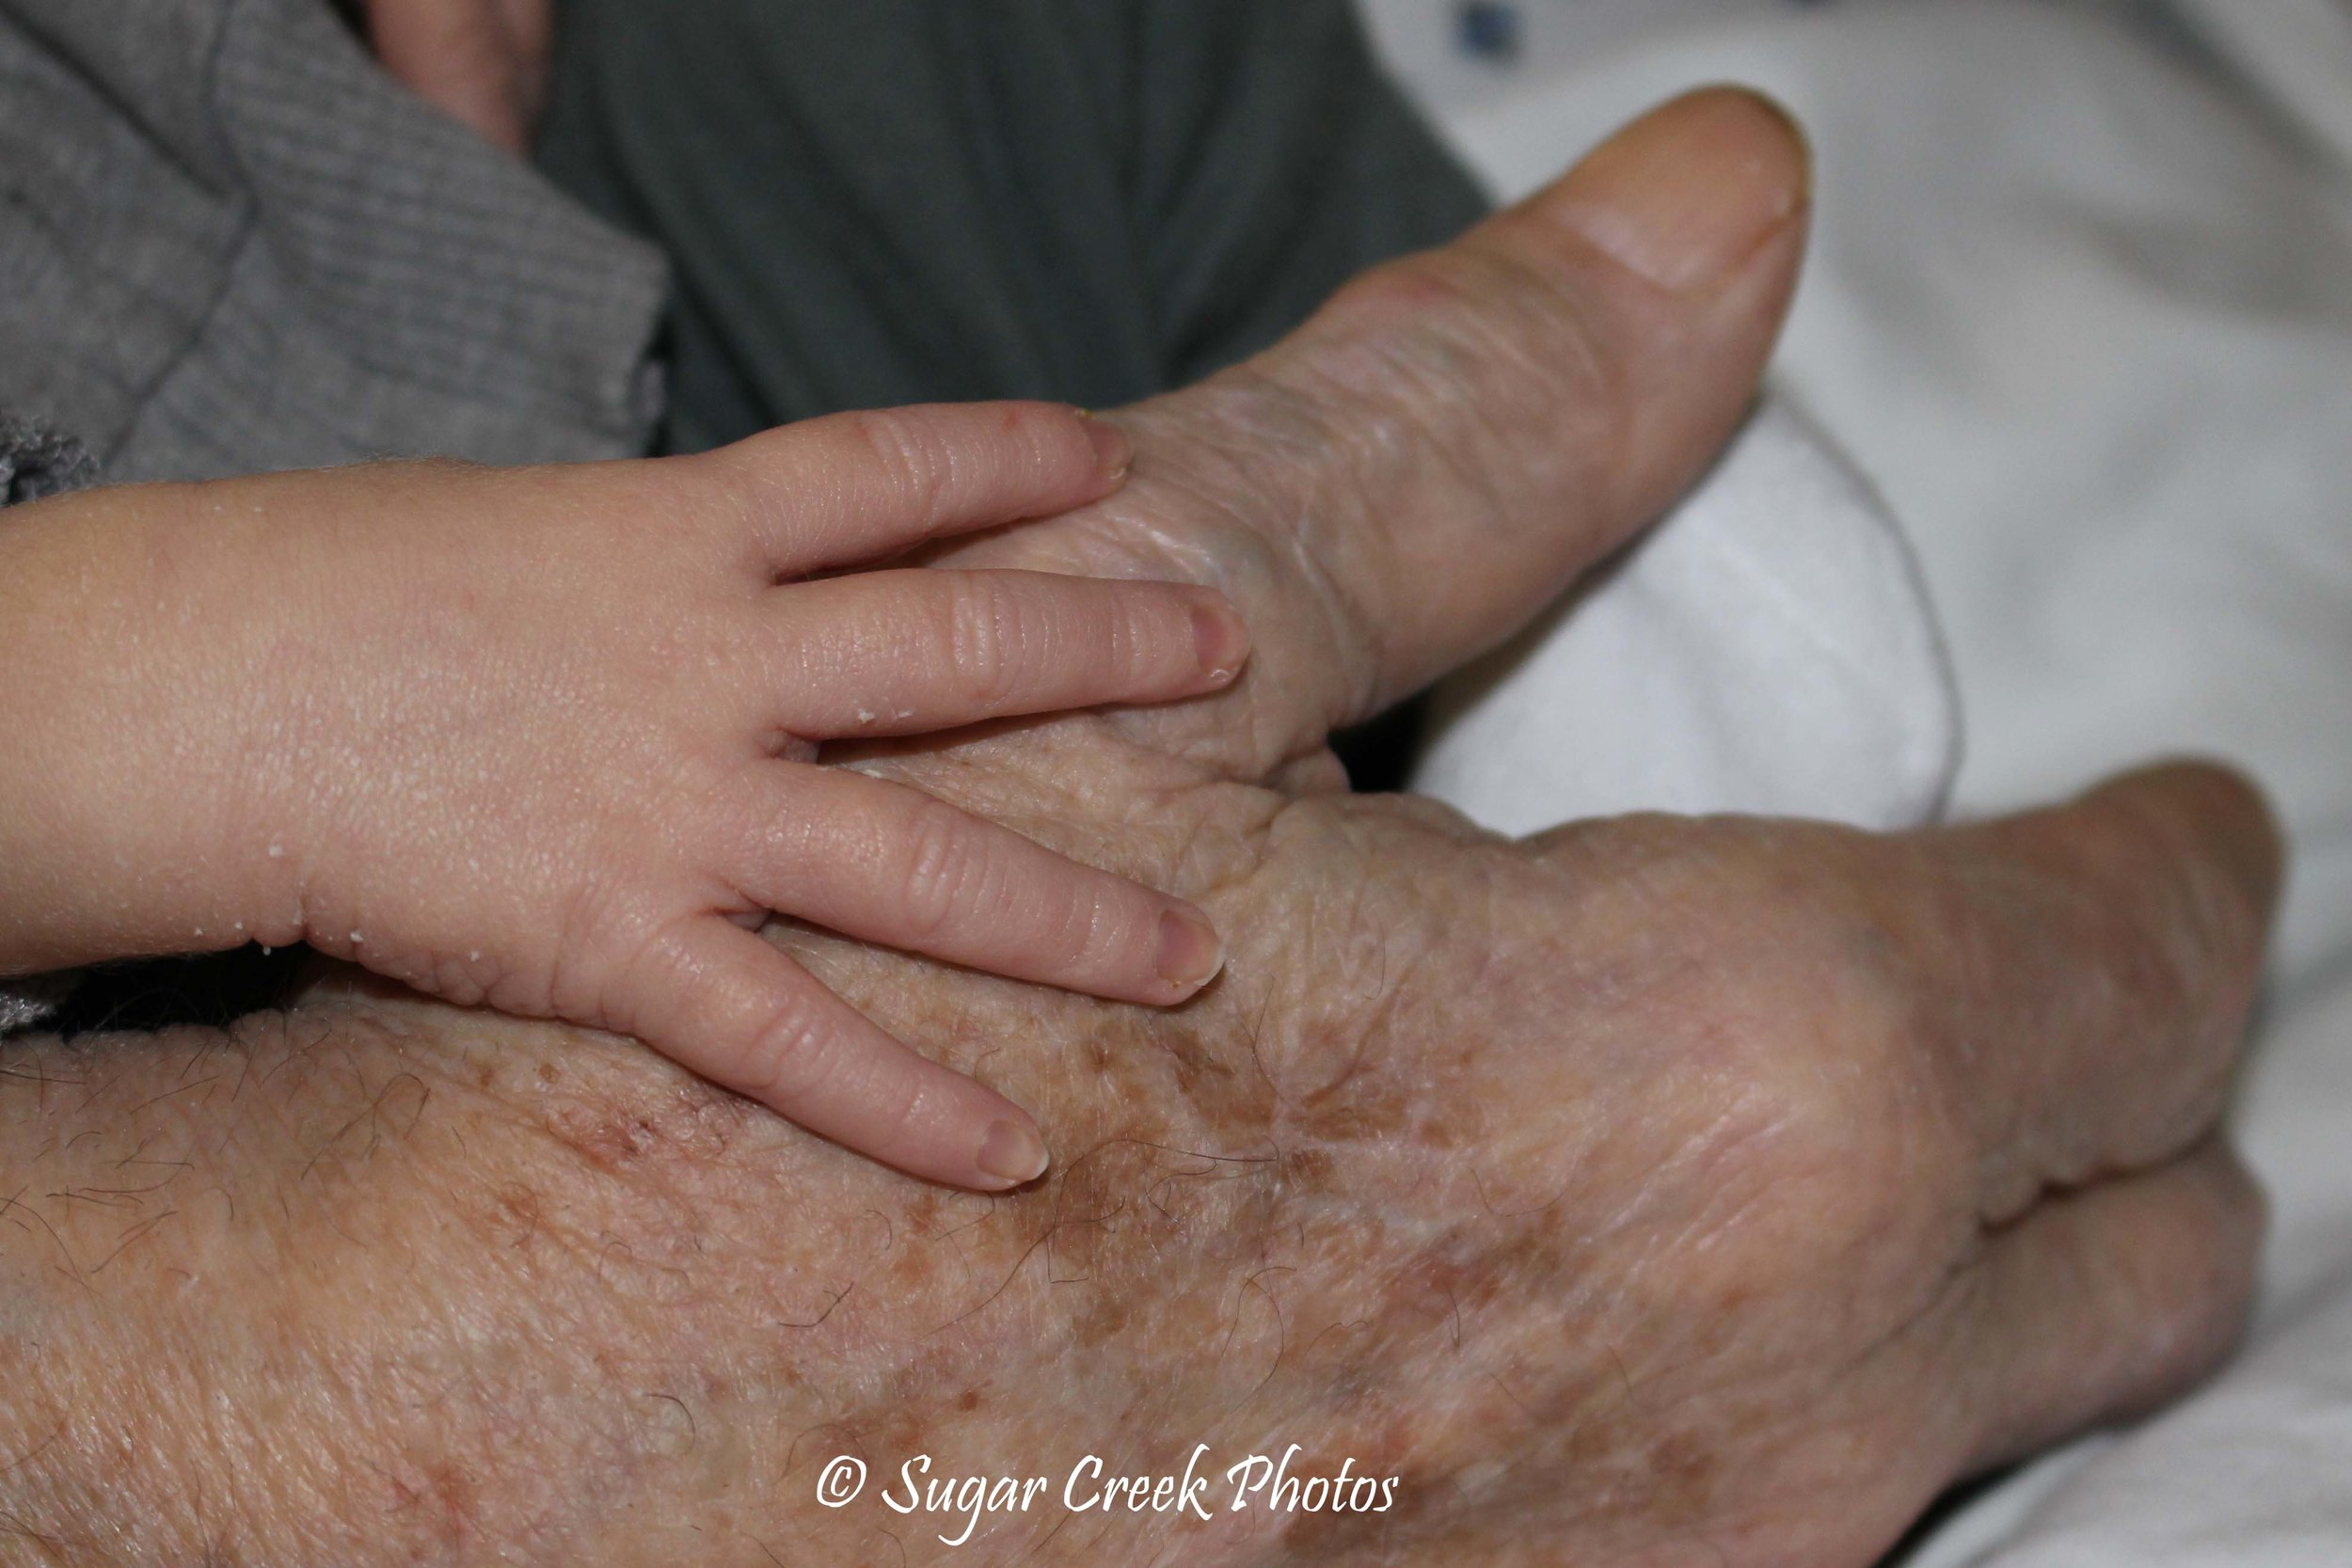 """My favorite picture from 2017. """"Young and Old"""" My 85 year old father and 2 week old nephew's hands I was able to photograph them in January 2017. My dad passed away a couple months later."""